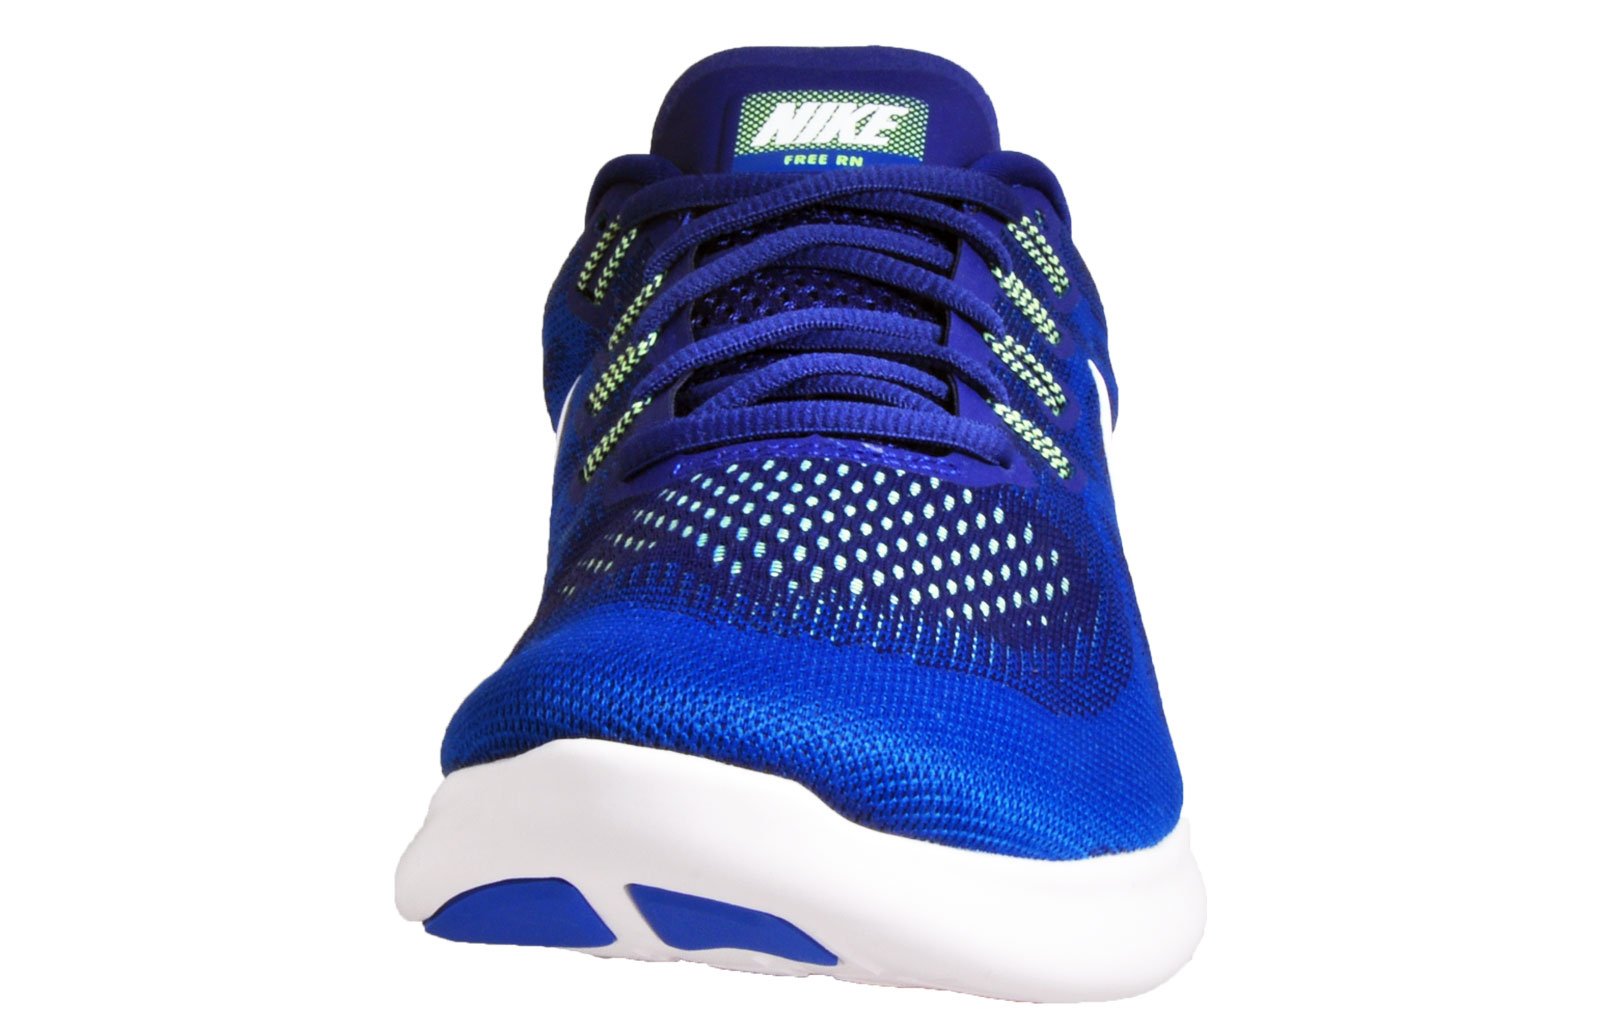 e245d12d8569 ... get nike free rn mens premium running shoes fitness gym trainers blue  2f765 a24fd